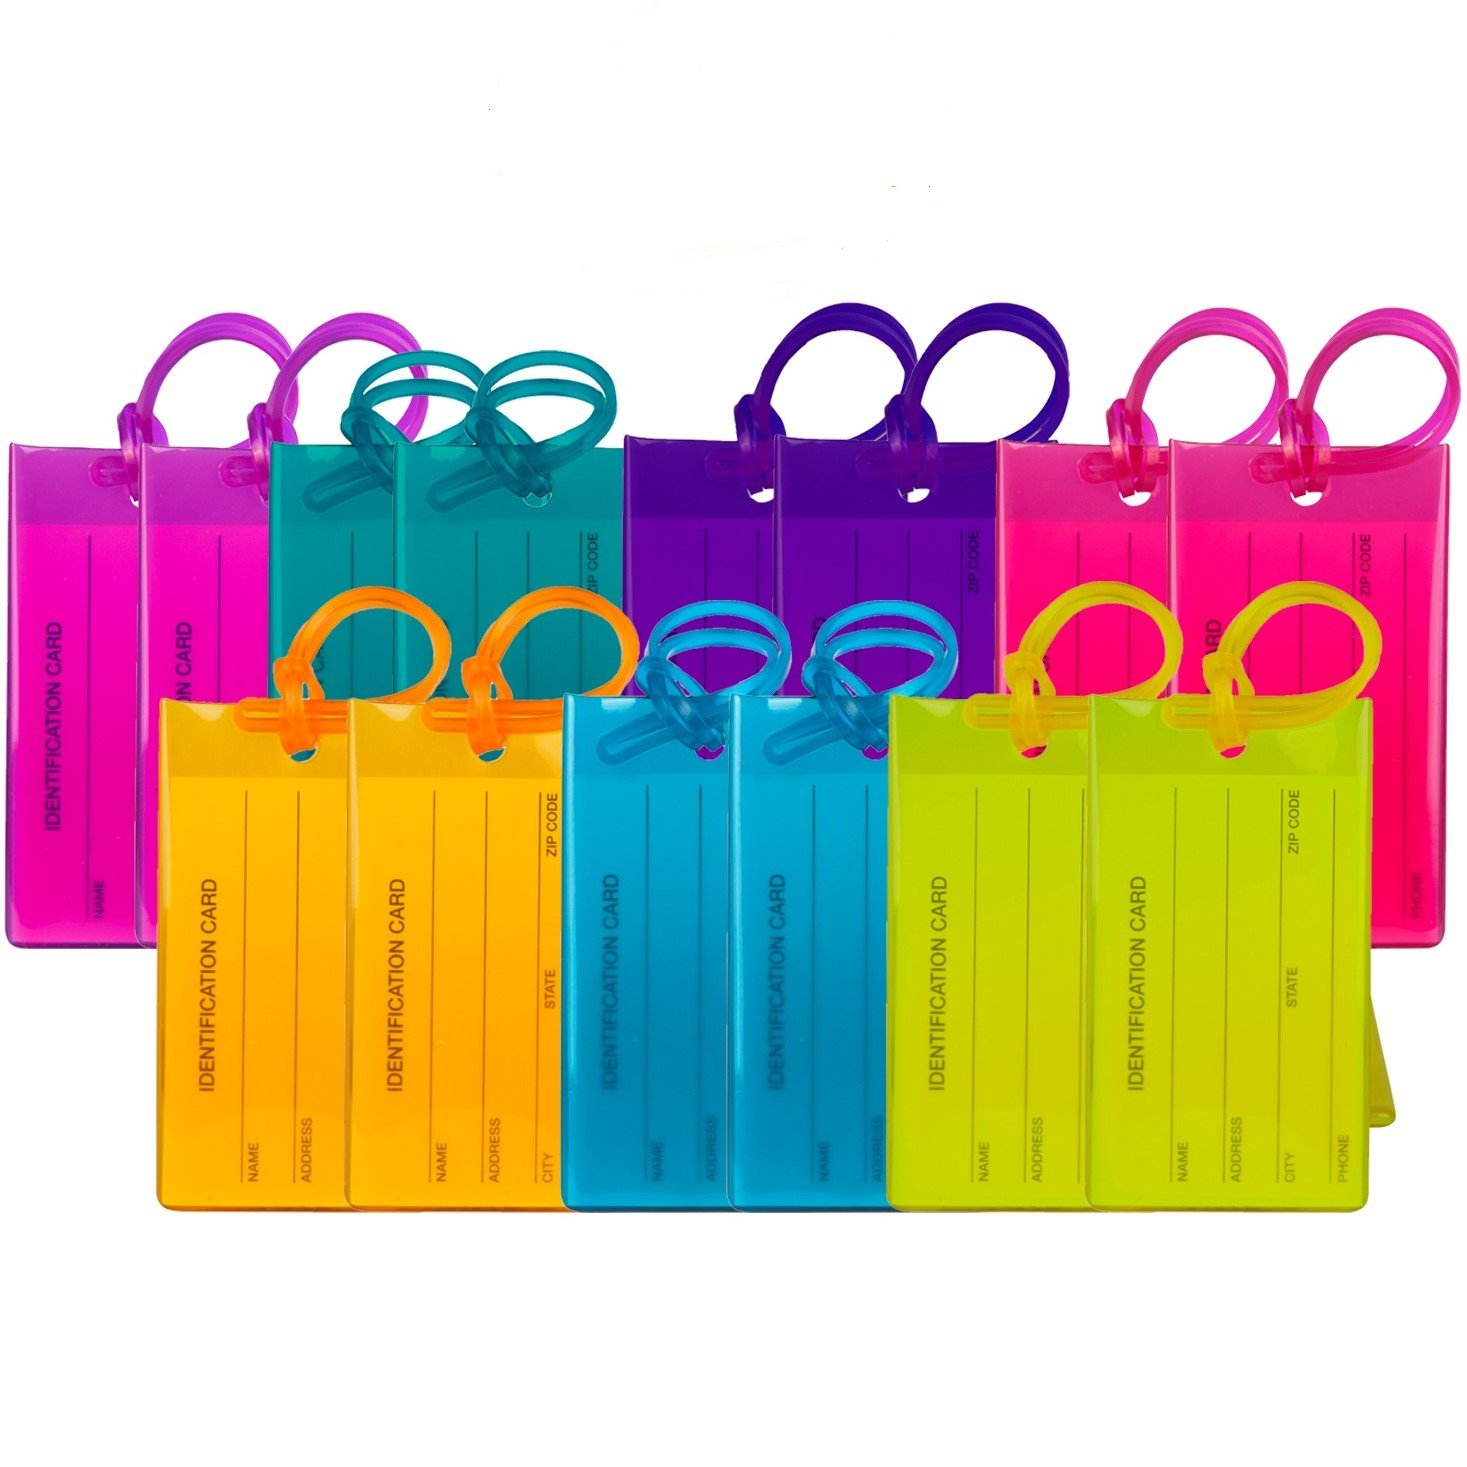 14 Pack TravelMore Luggage Tags For Suitcases, Flexible Silicone Travel ID Identifier Labels Set For Bags & Baggage - Multi Color Pack by TravelMore